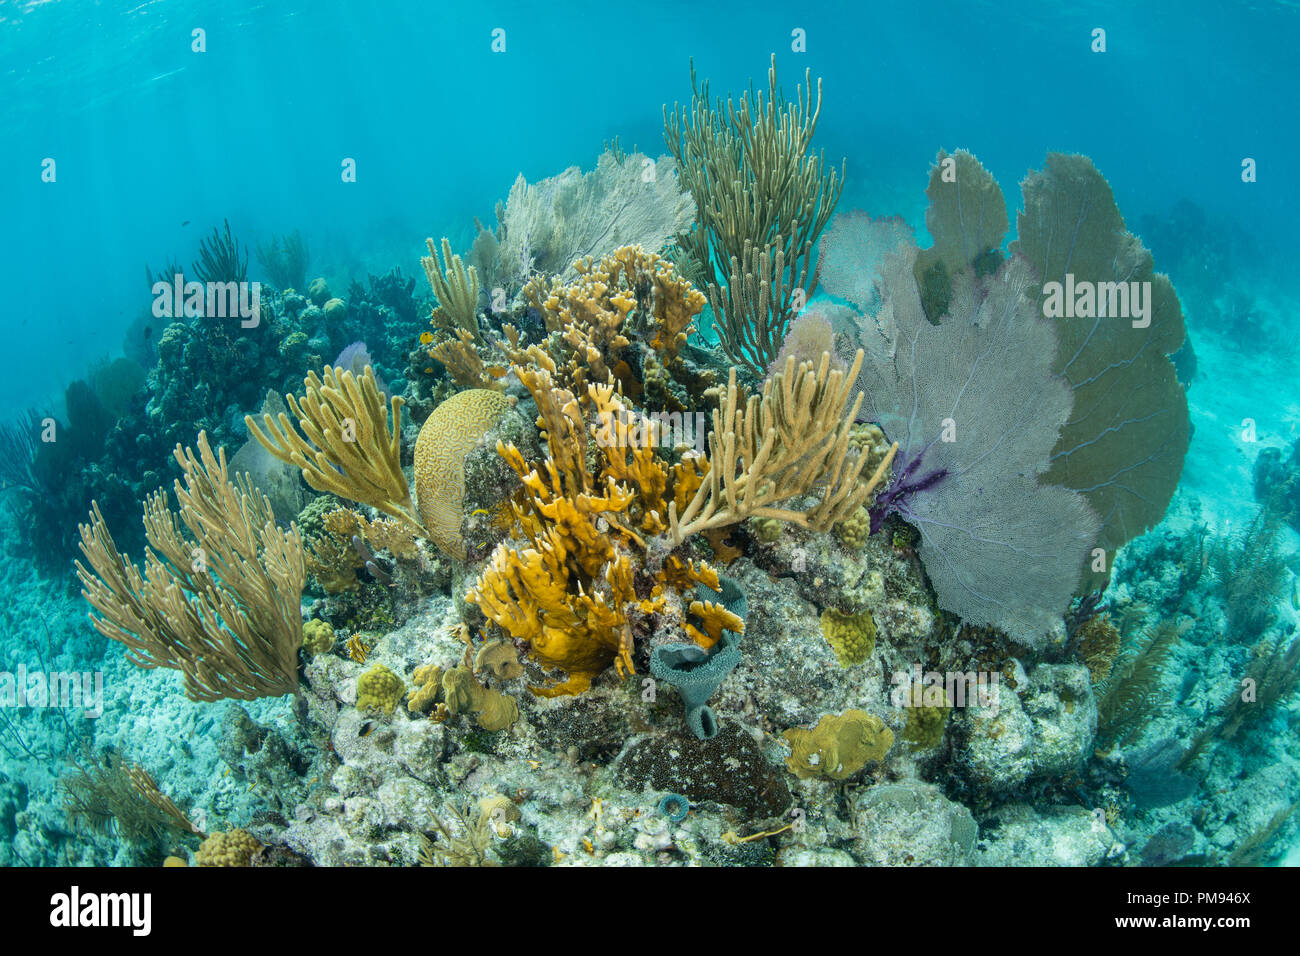 A beautiful coral reef grows along the edge of Turneffe Atoll in the Caribbean Sea. This reef is part of the massive Mesoamerican Reef System. - Stock Image